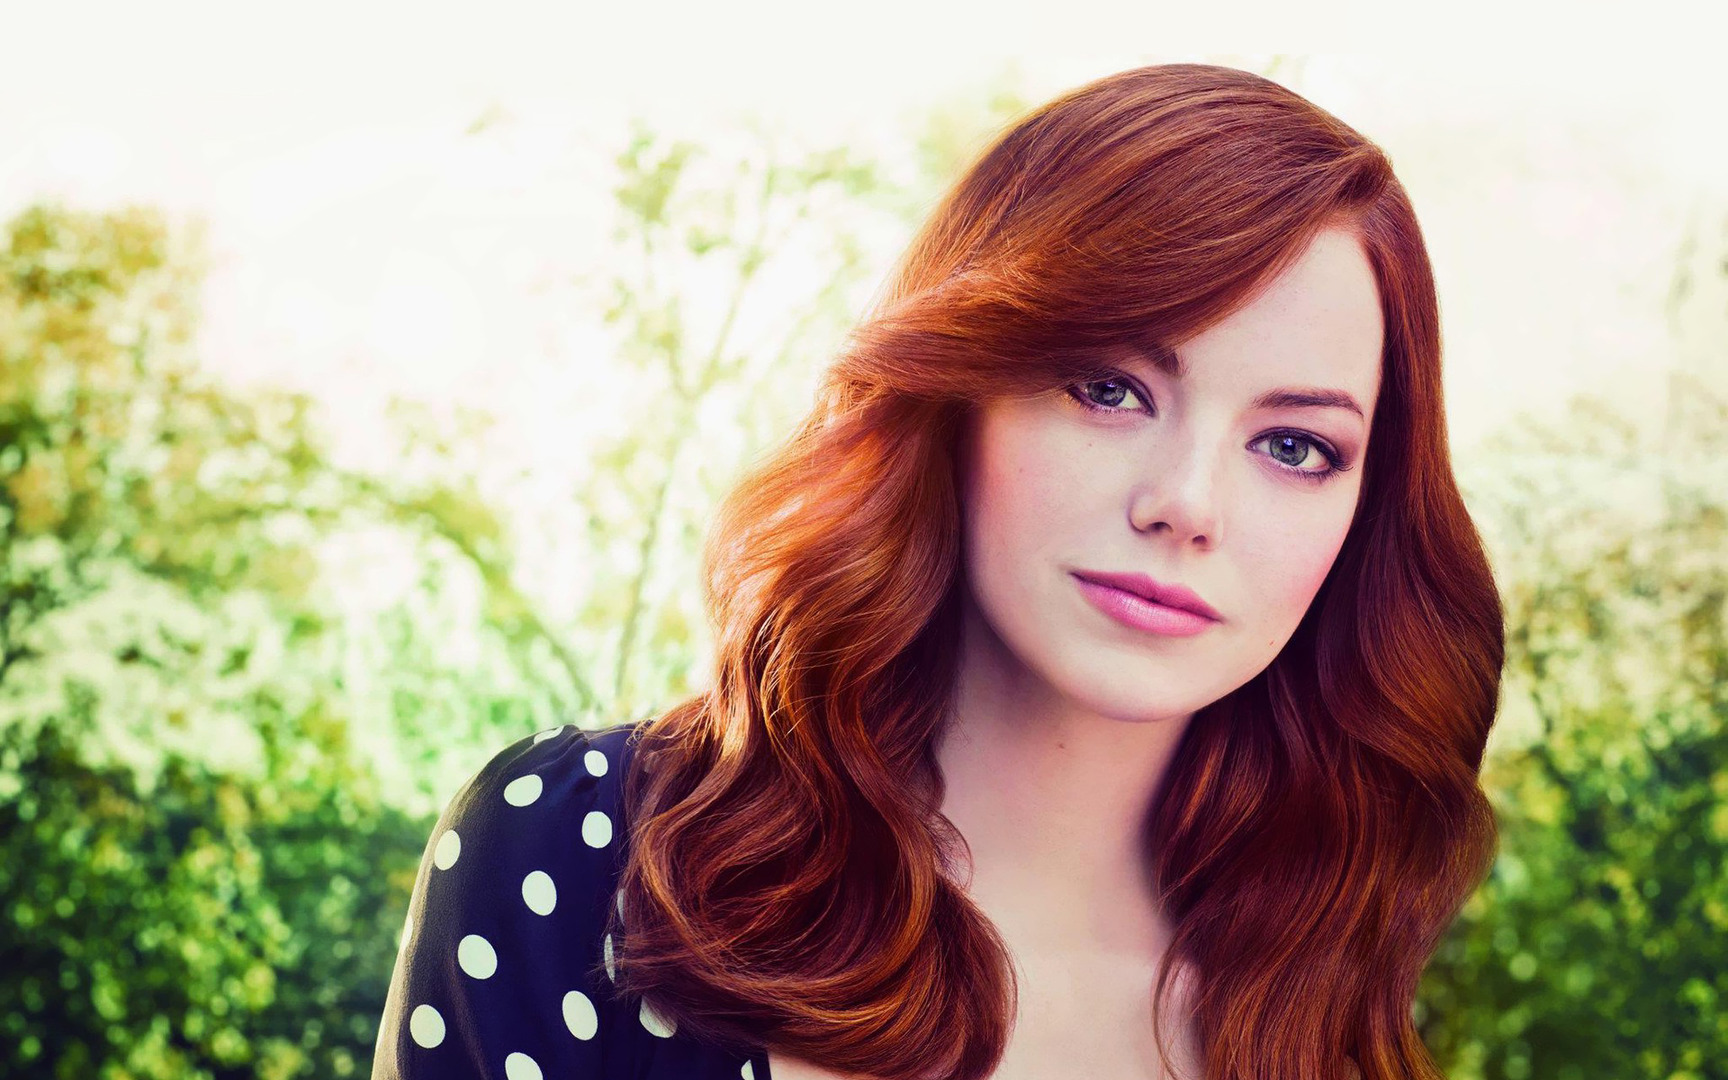 lovely emma stone nice cute face look background mobile desktop